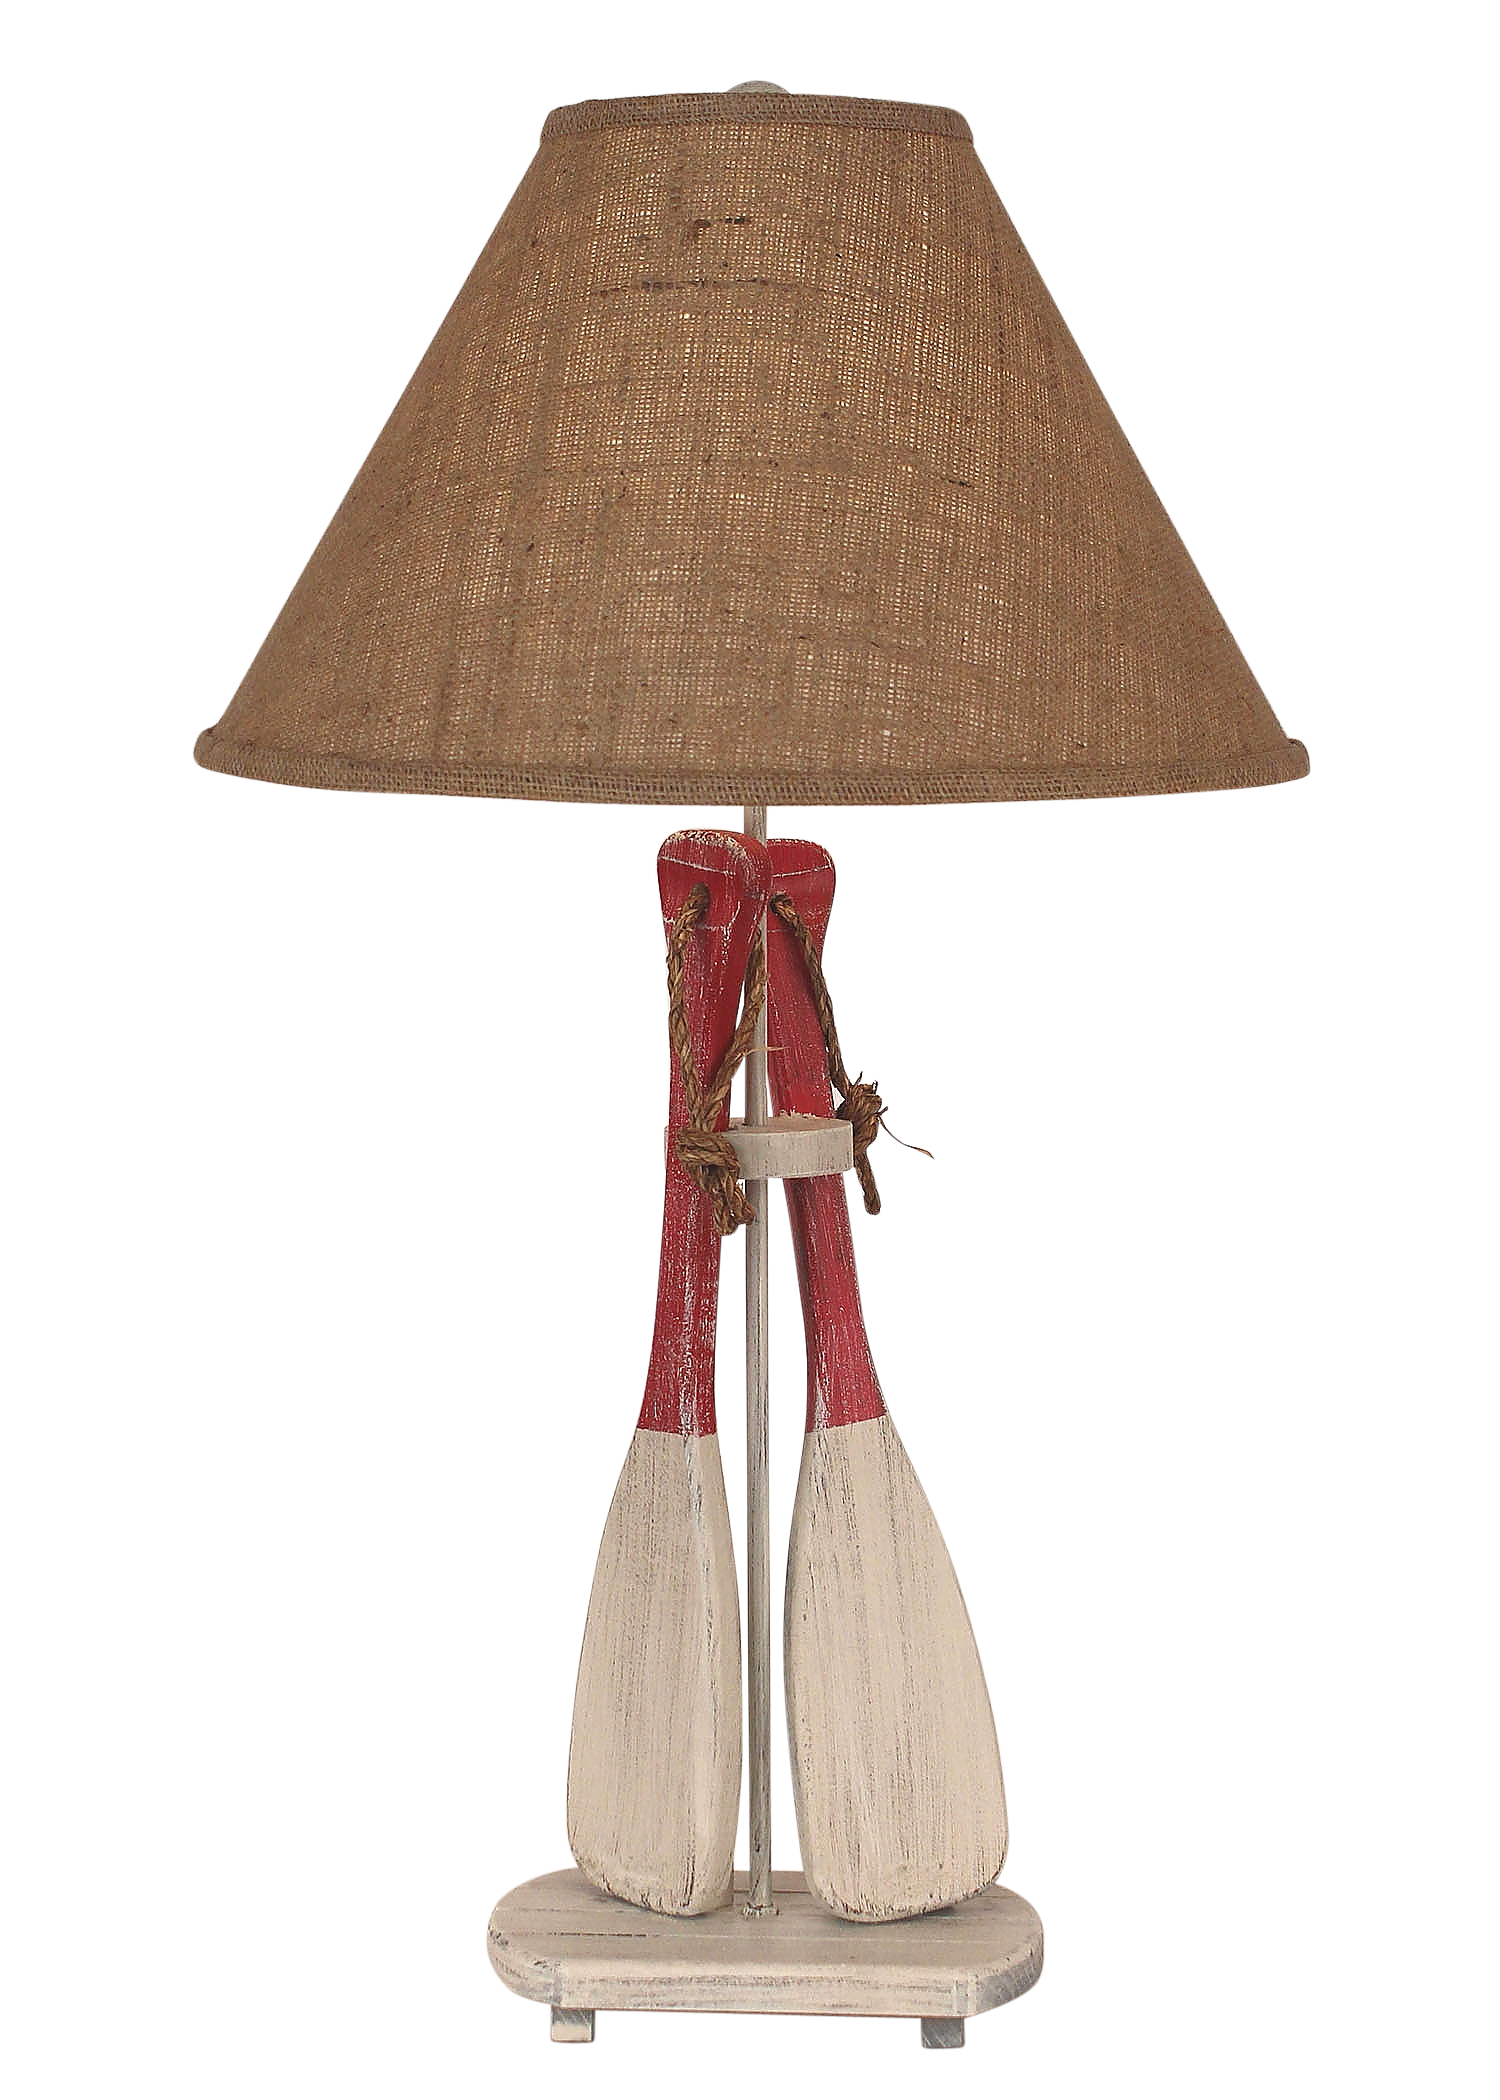 Cottage/Red 2-Paddles w/ Rope Table Lamp - Coast Lamp Shop